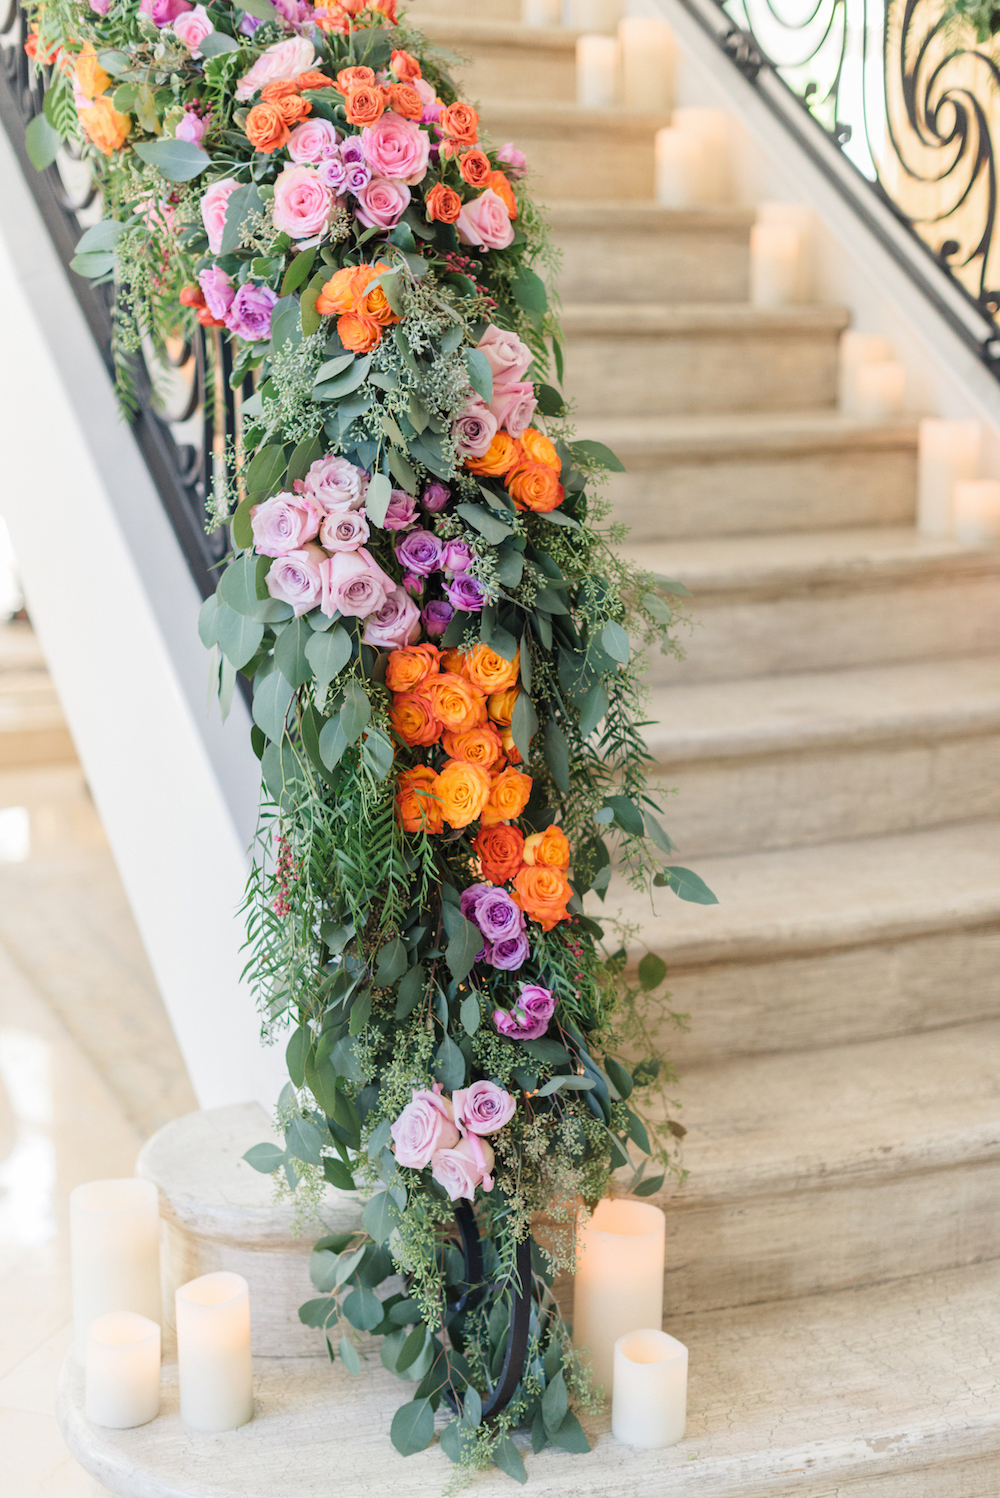 florals-grand-staircase